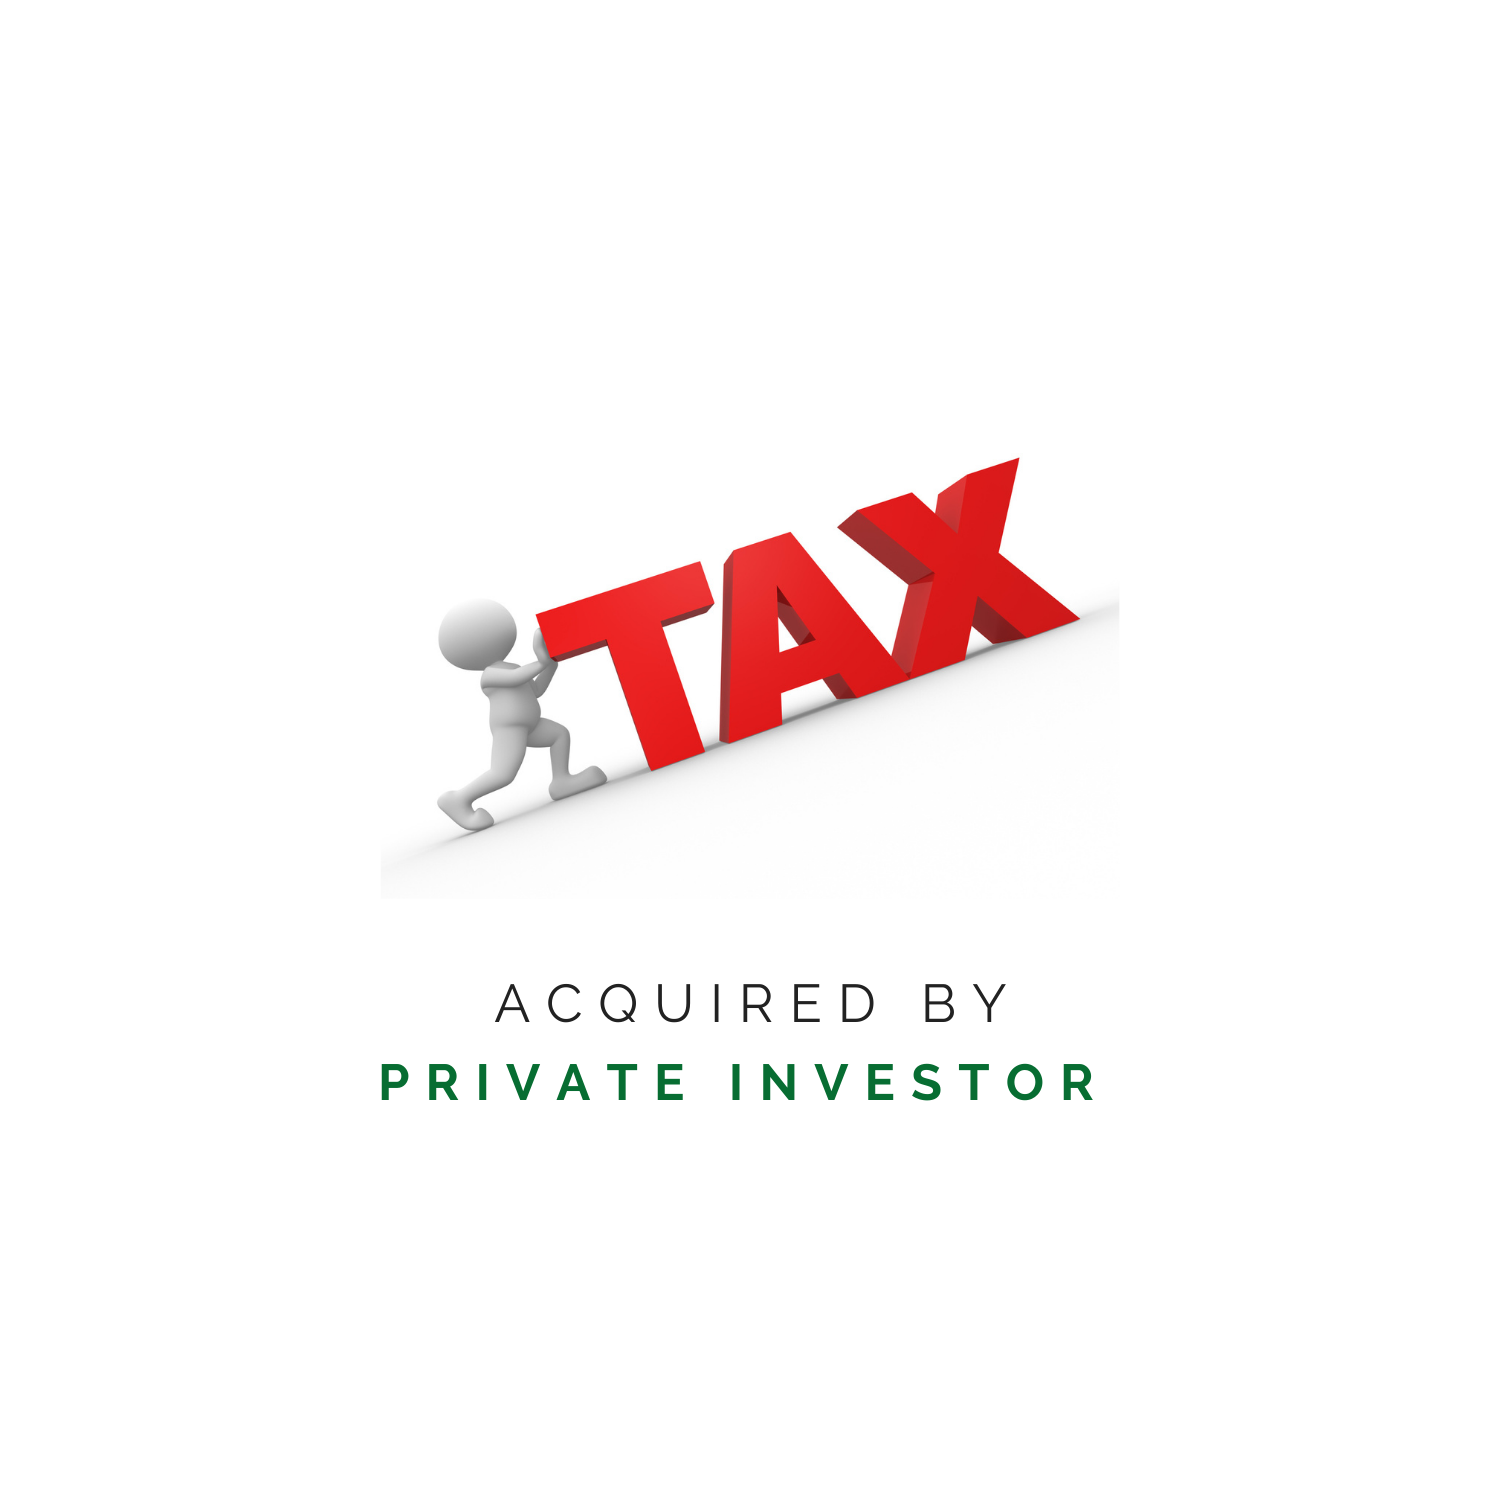 Sale of Property Tax Consultancy